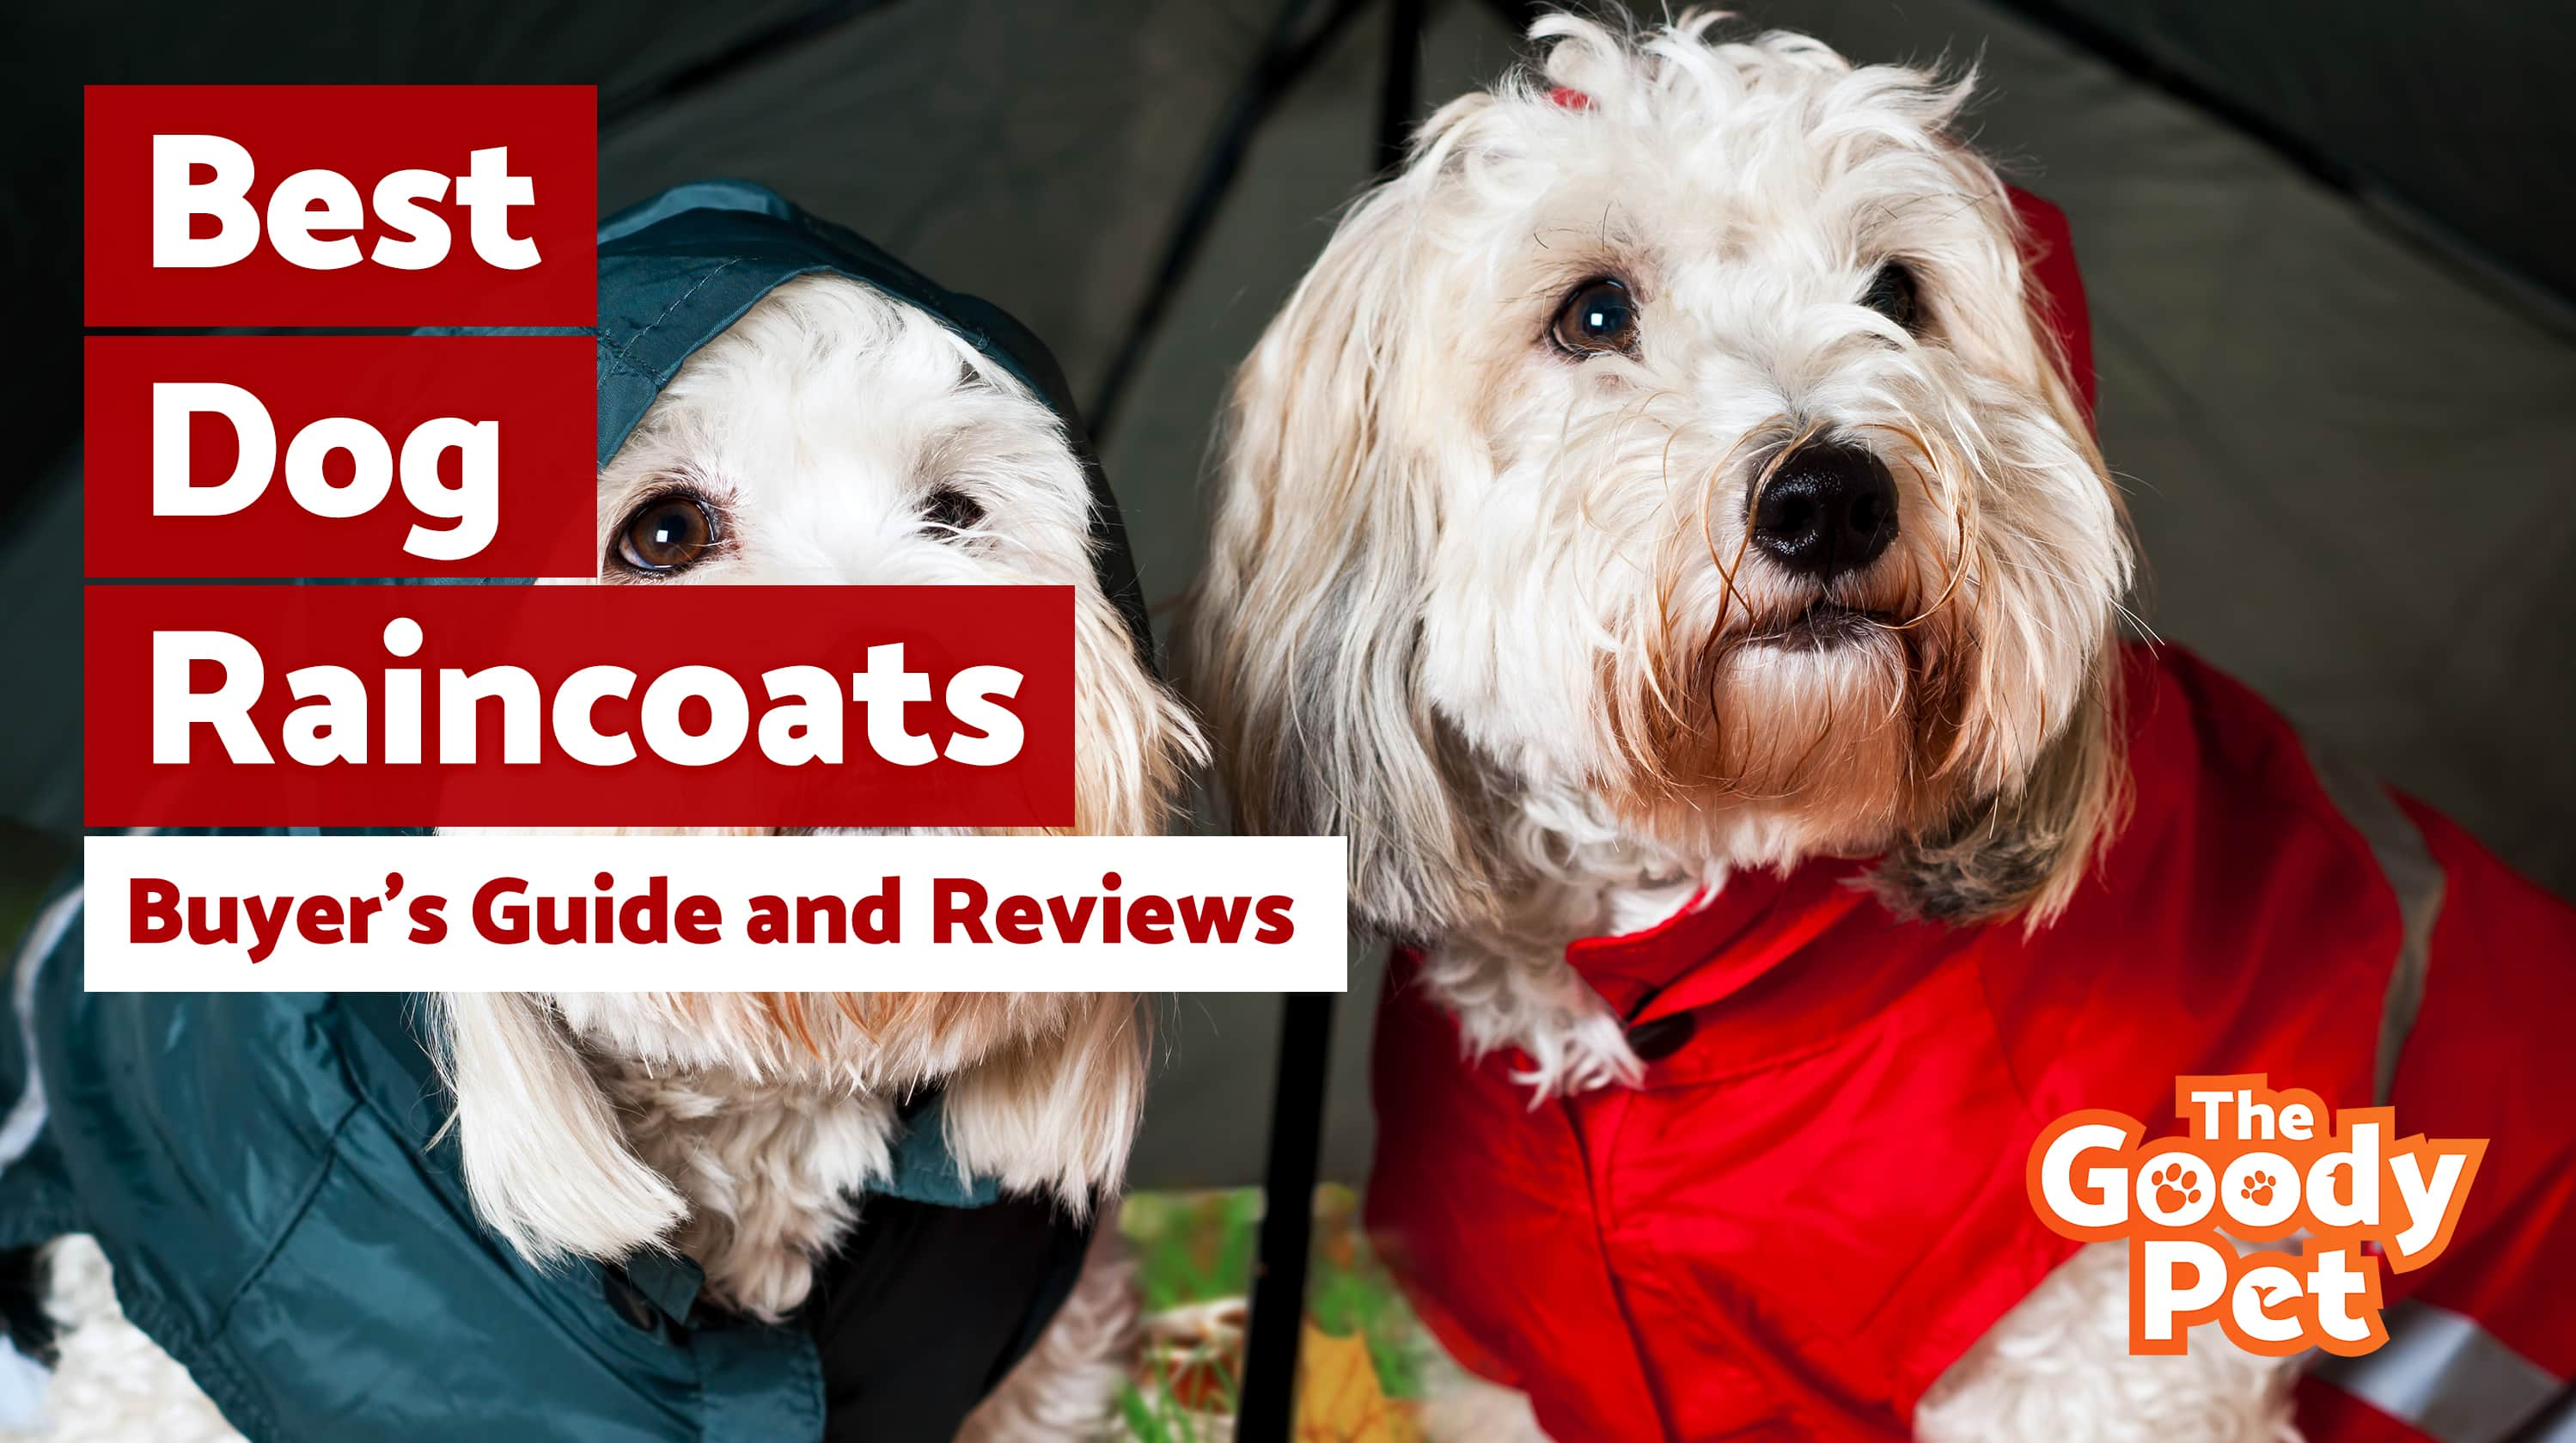 Best Dog Raincoats For Your Furry Friend – Our 2019 Reviews & Top Picks